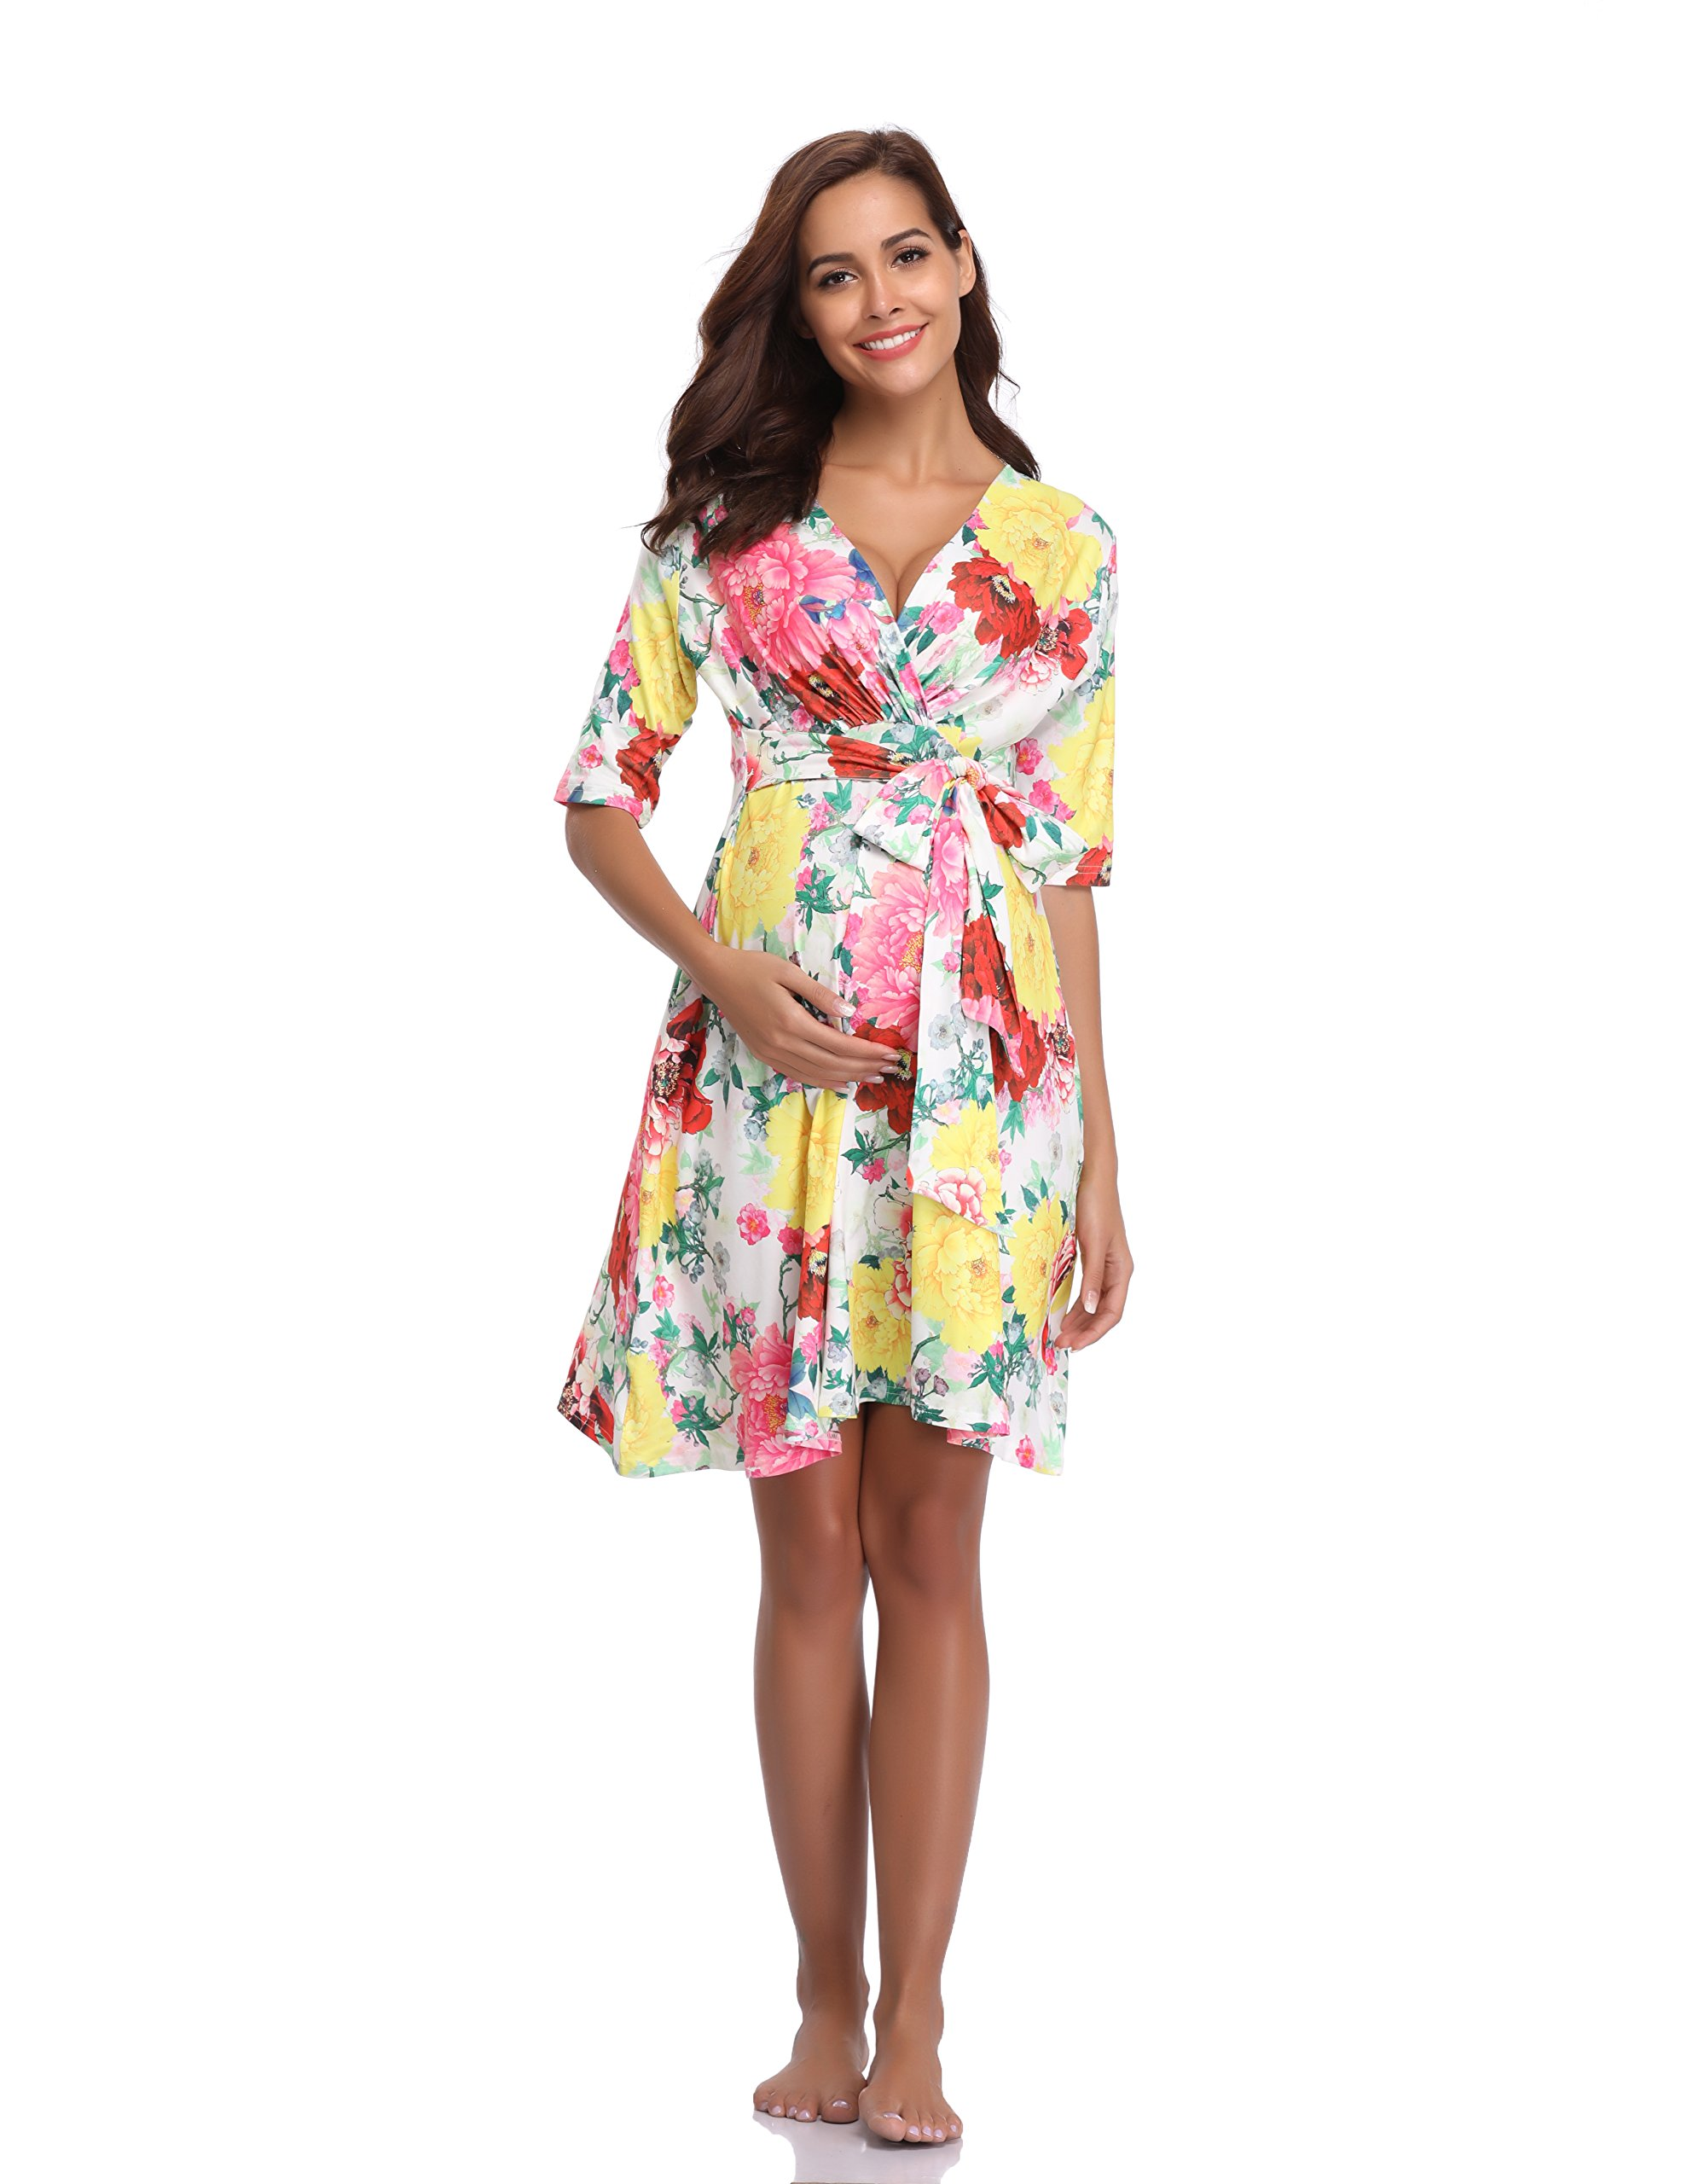 Floating Time Women's Floral Print Short Sleeve Maternity Dress(XL, 1#)